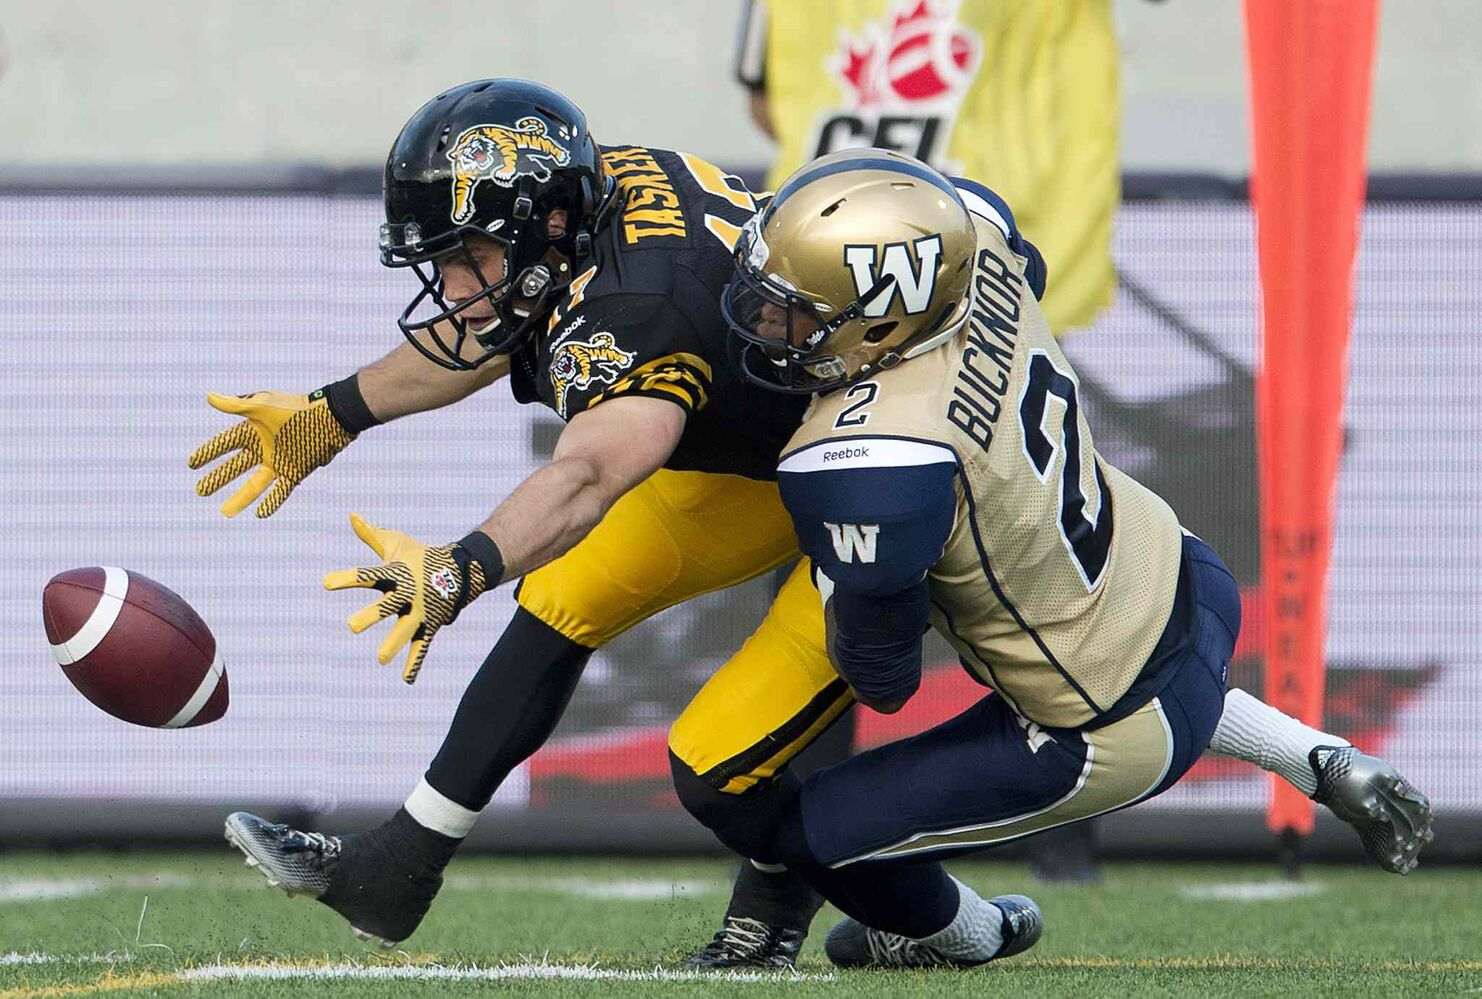 Hamilton Tiger-Cats' receiver Luke Tasker, left, loses the ball but recovers it past Winnipeg Blue Bombers' defensive back Matt Bucknor, right, during the first half of Thursday's game.  (Nathan Denette / The Canadian Press)